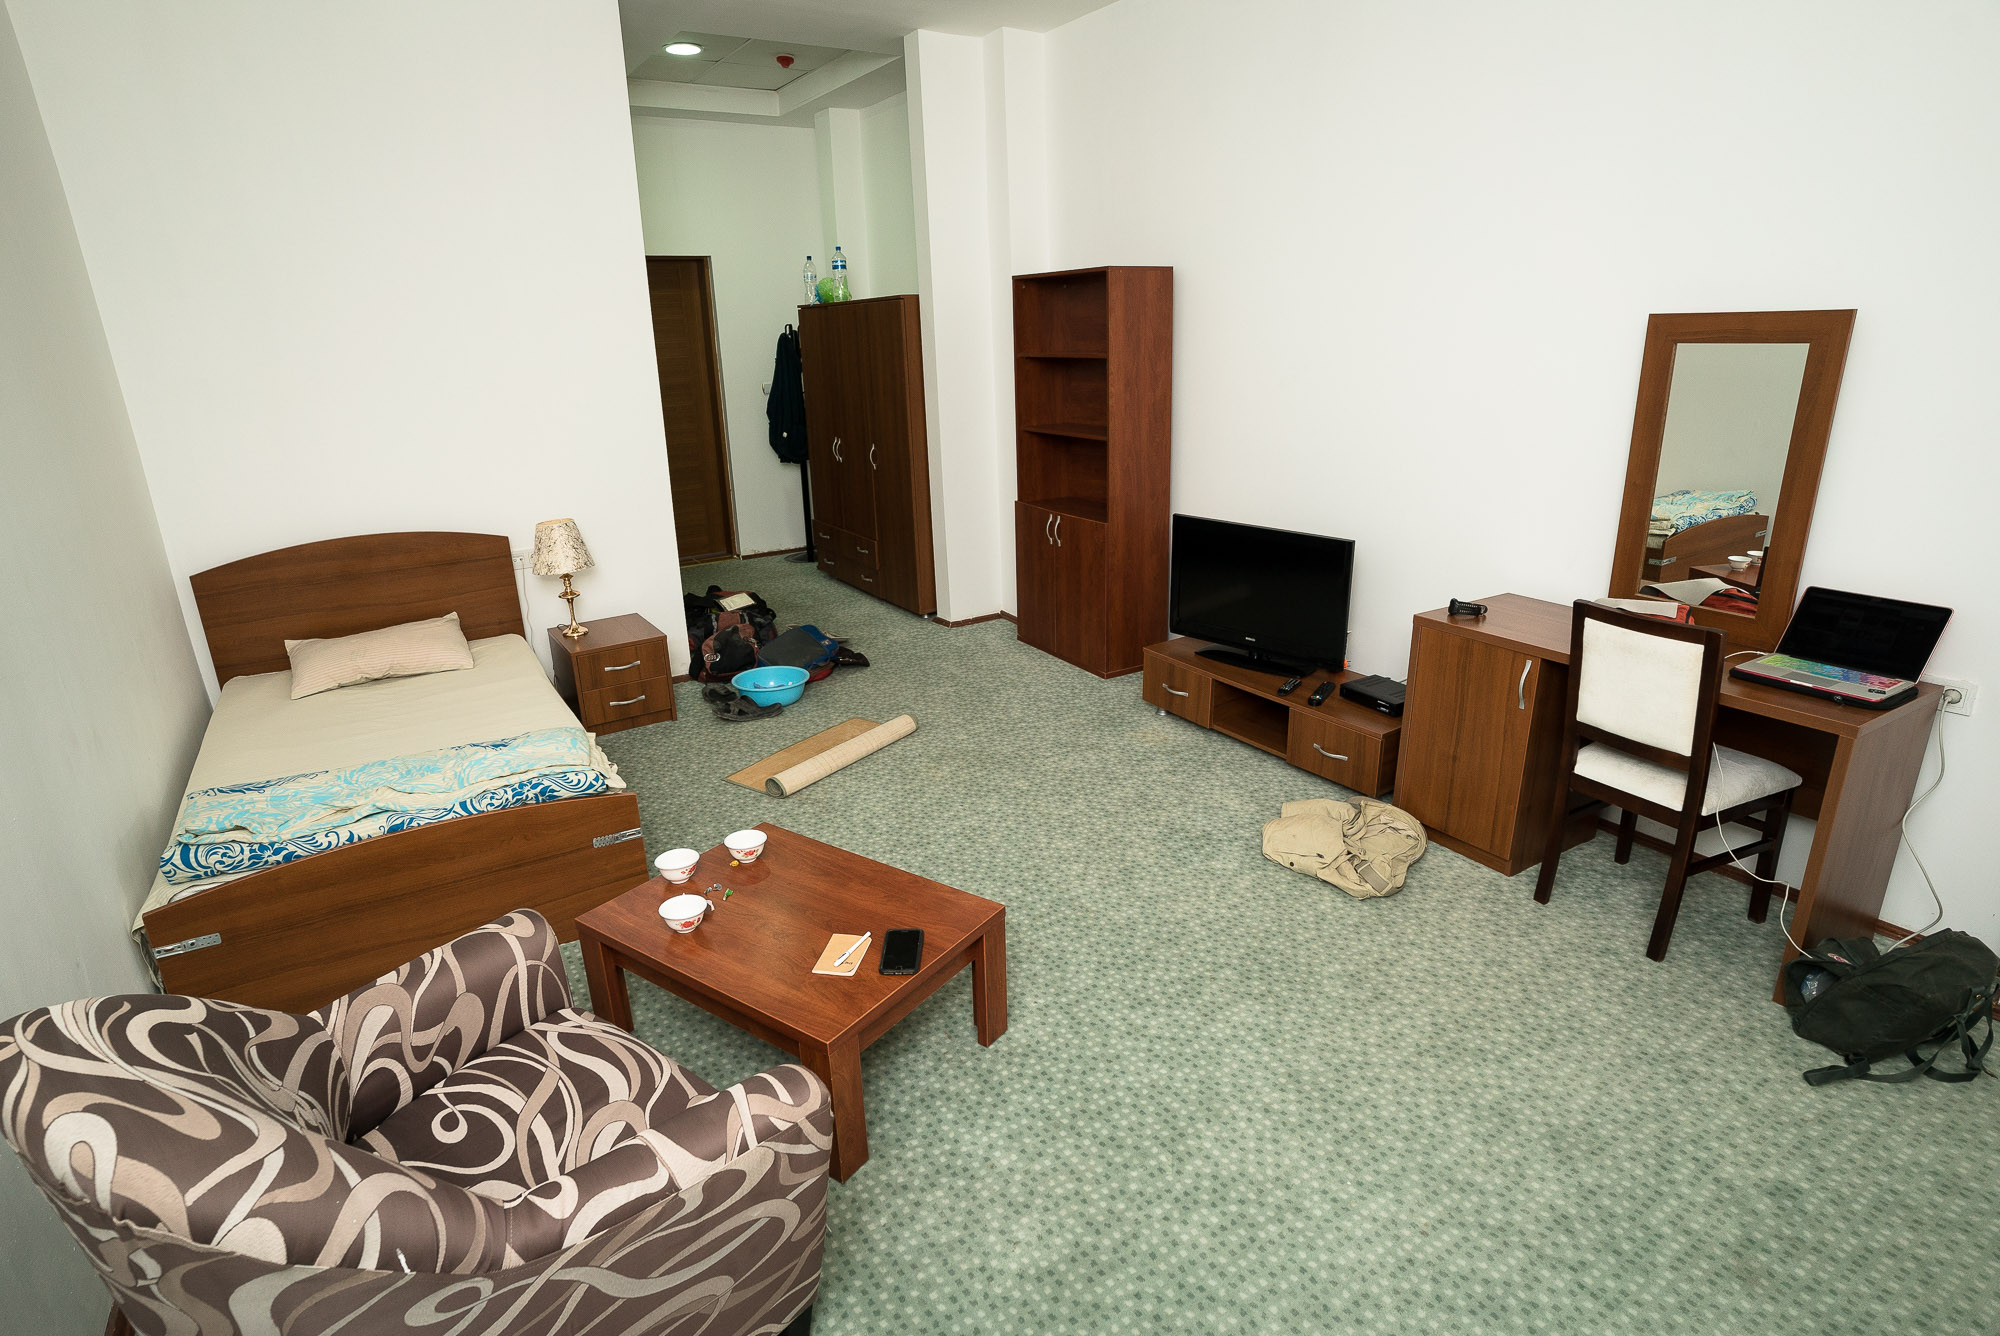 hotel room in Serakhs